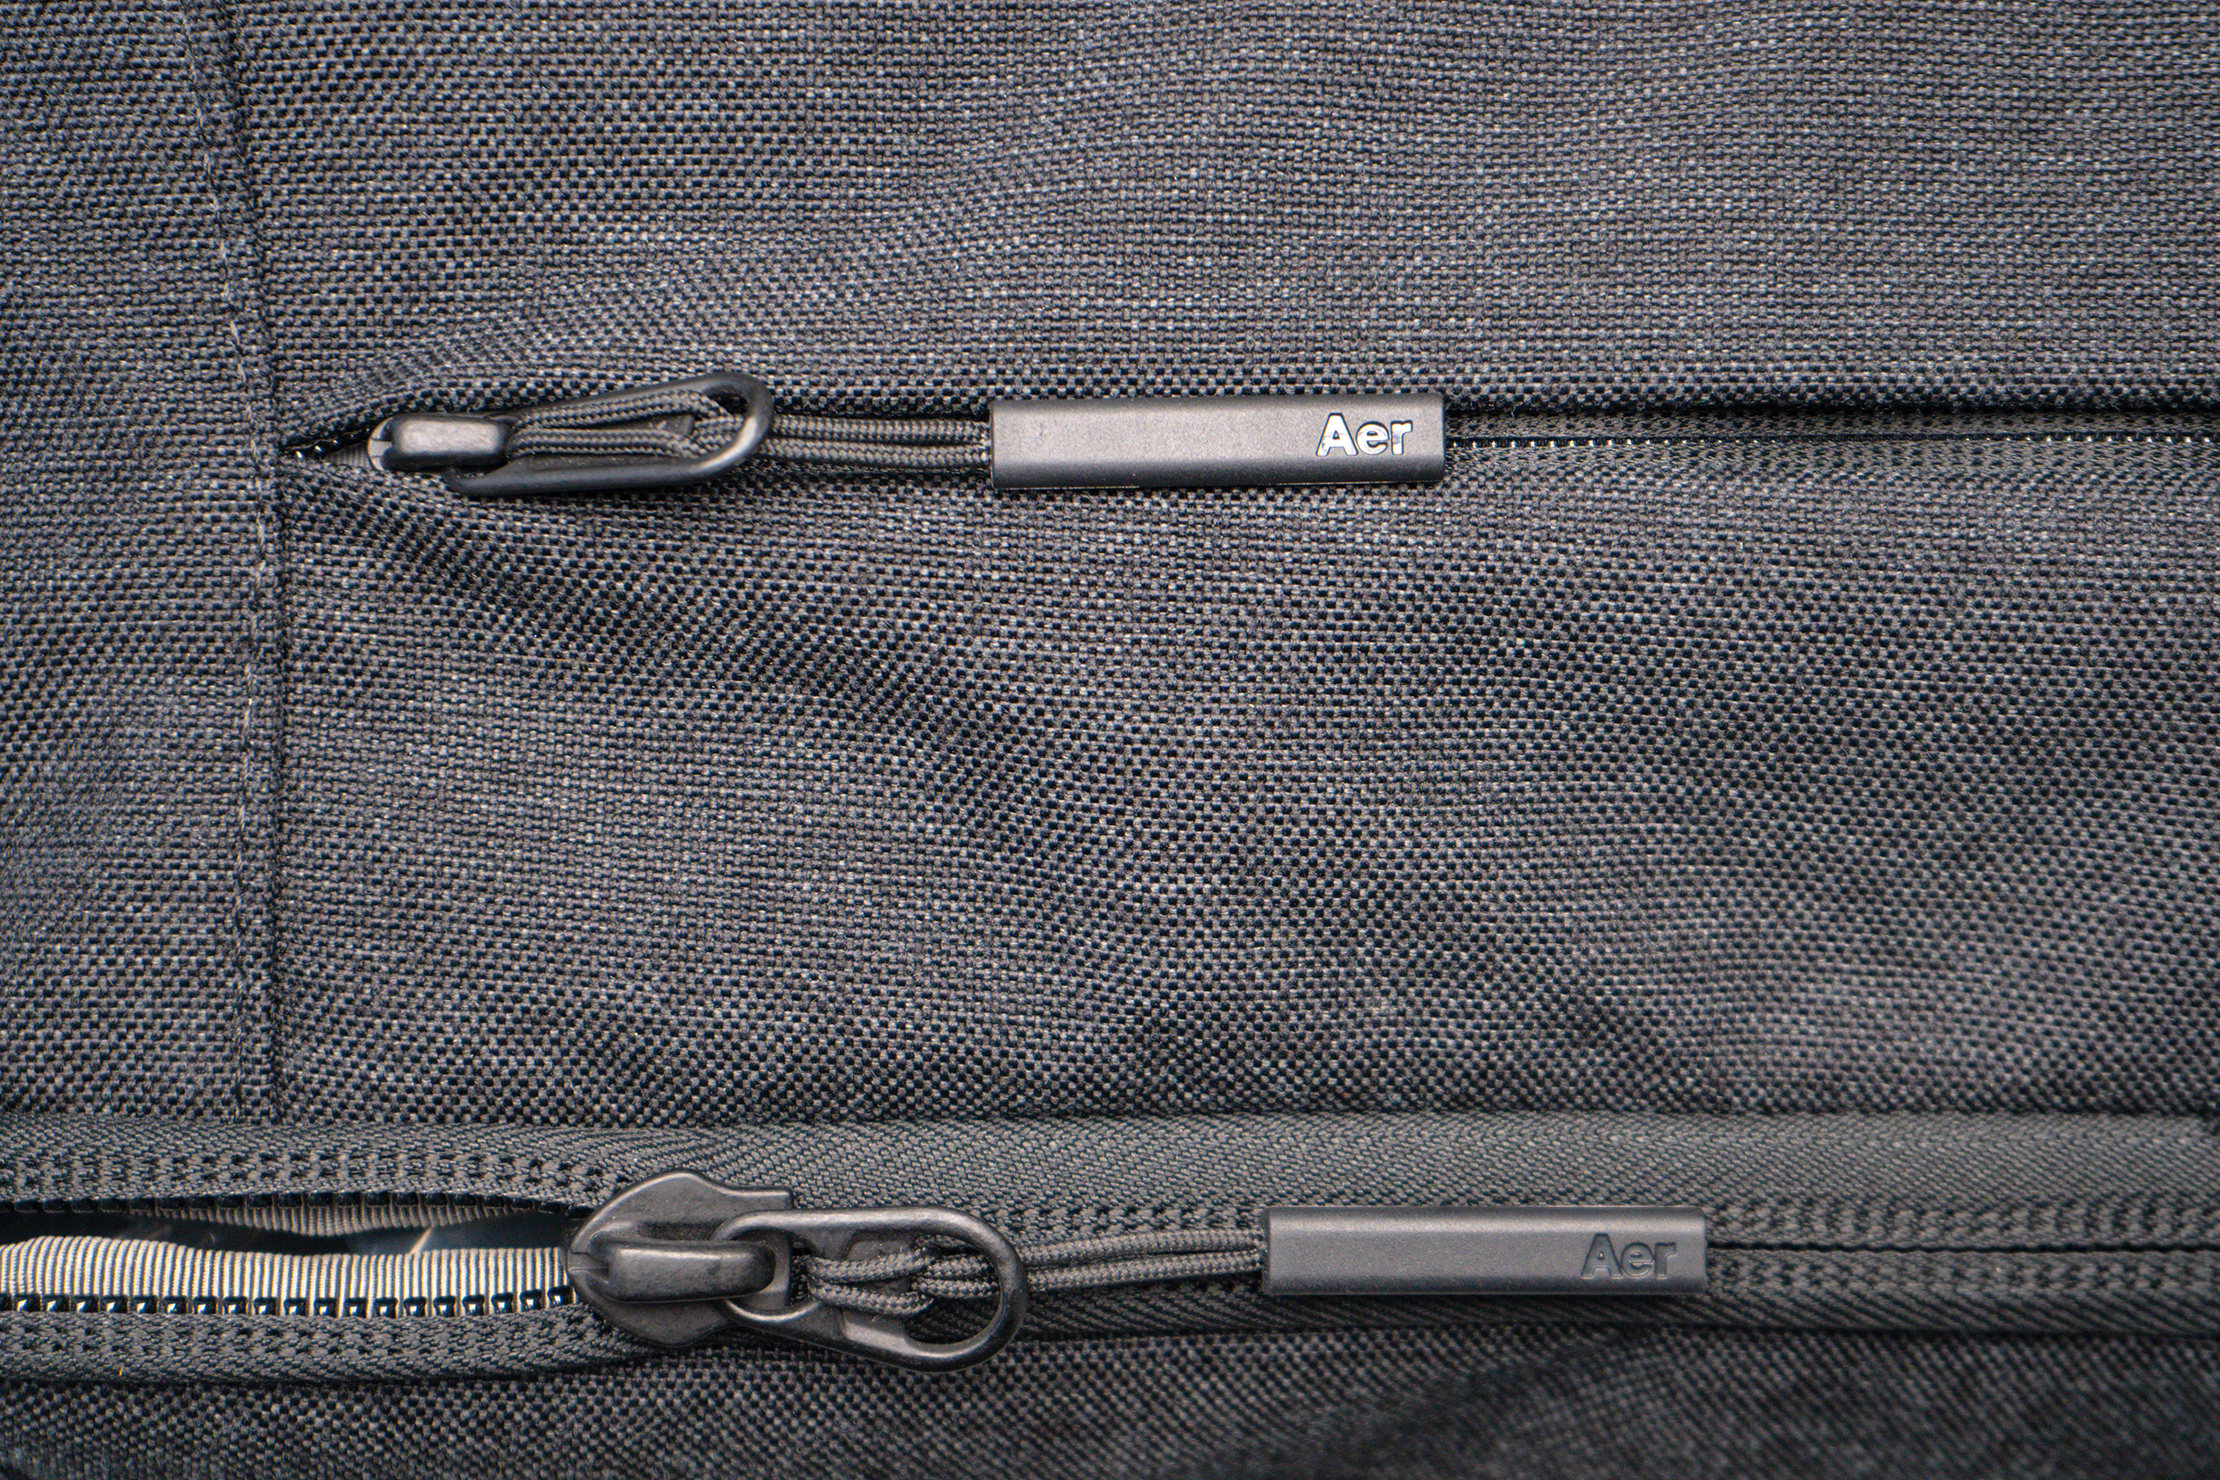 Aer x Ministry of Supply Lunar Pack Zippers